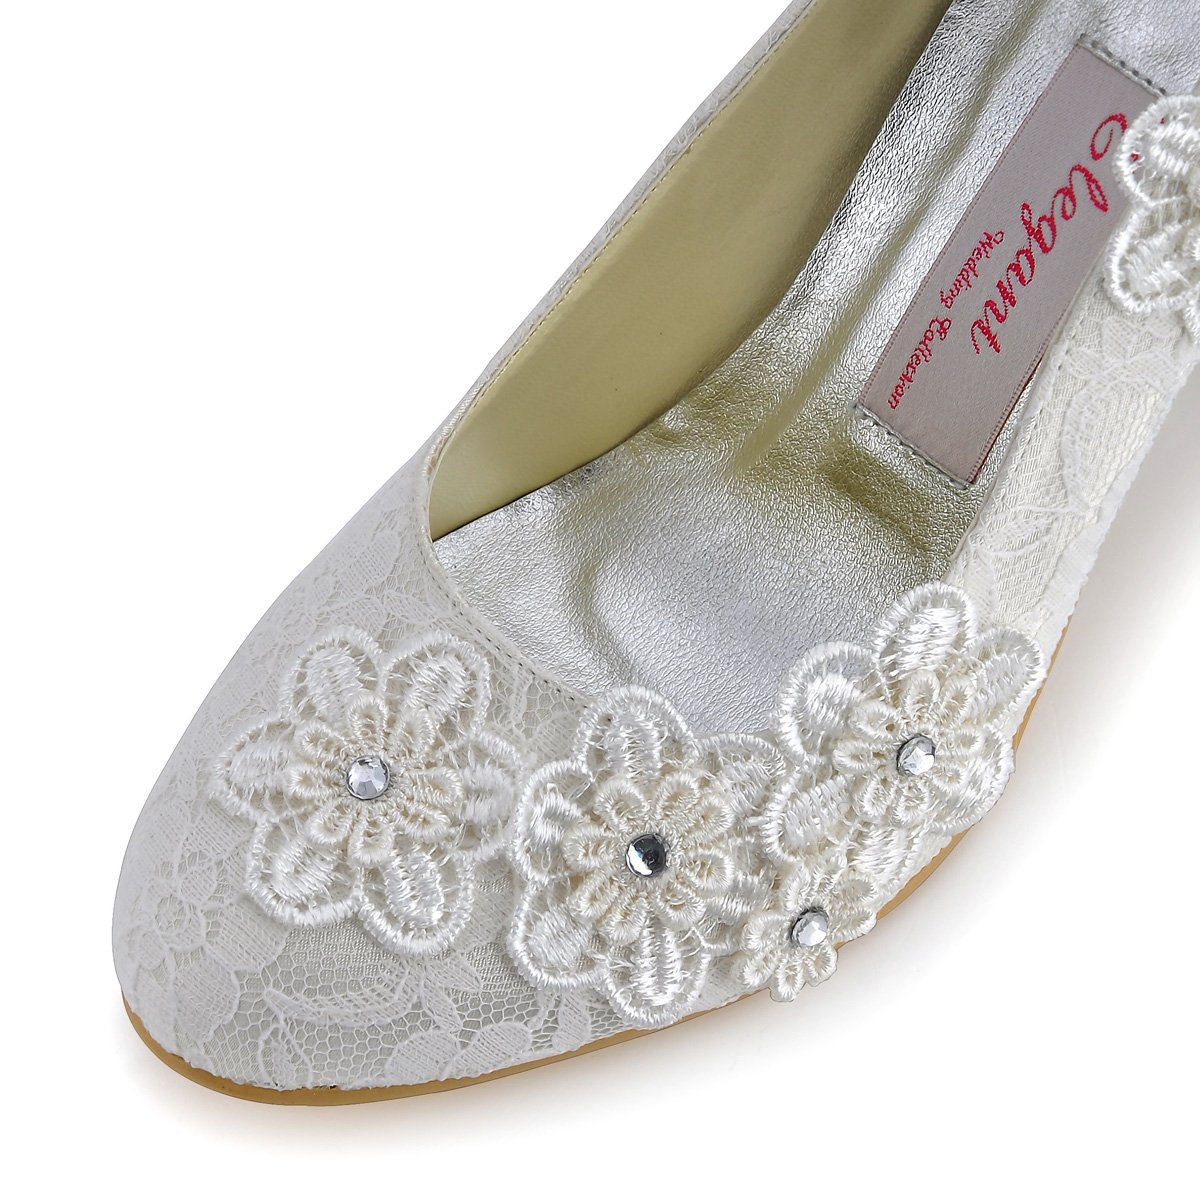 ElegantPark Women Vintage Closed Toe Pumps High Heel Flowers Lace Wedding Bridal Dress Shoes 4